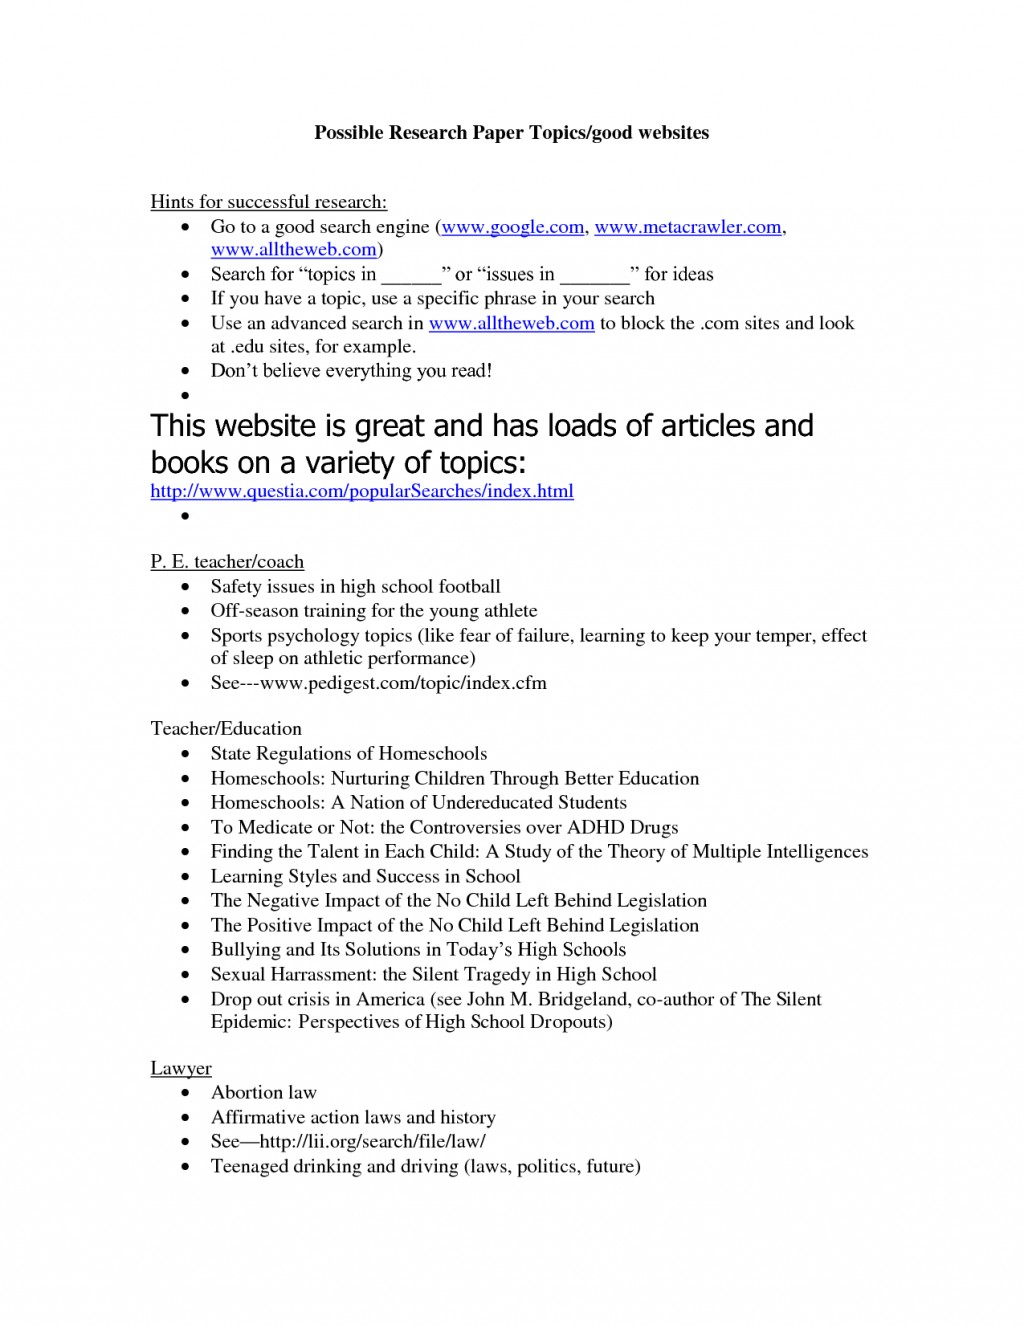 003 Research Paper Topics For Middlechool Bestolutions Of Interesting Fabulous Papers Hightudents Fearsome Middle School High Students Persuasive Large